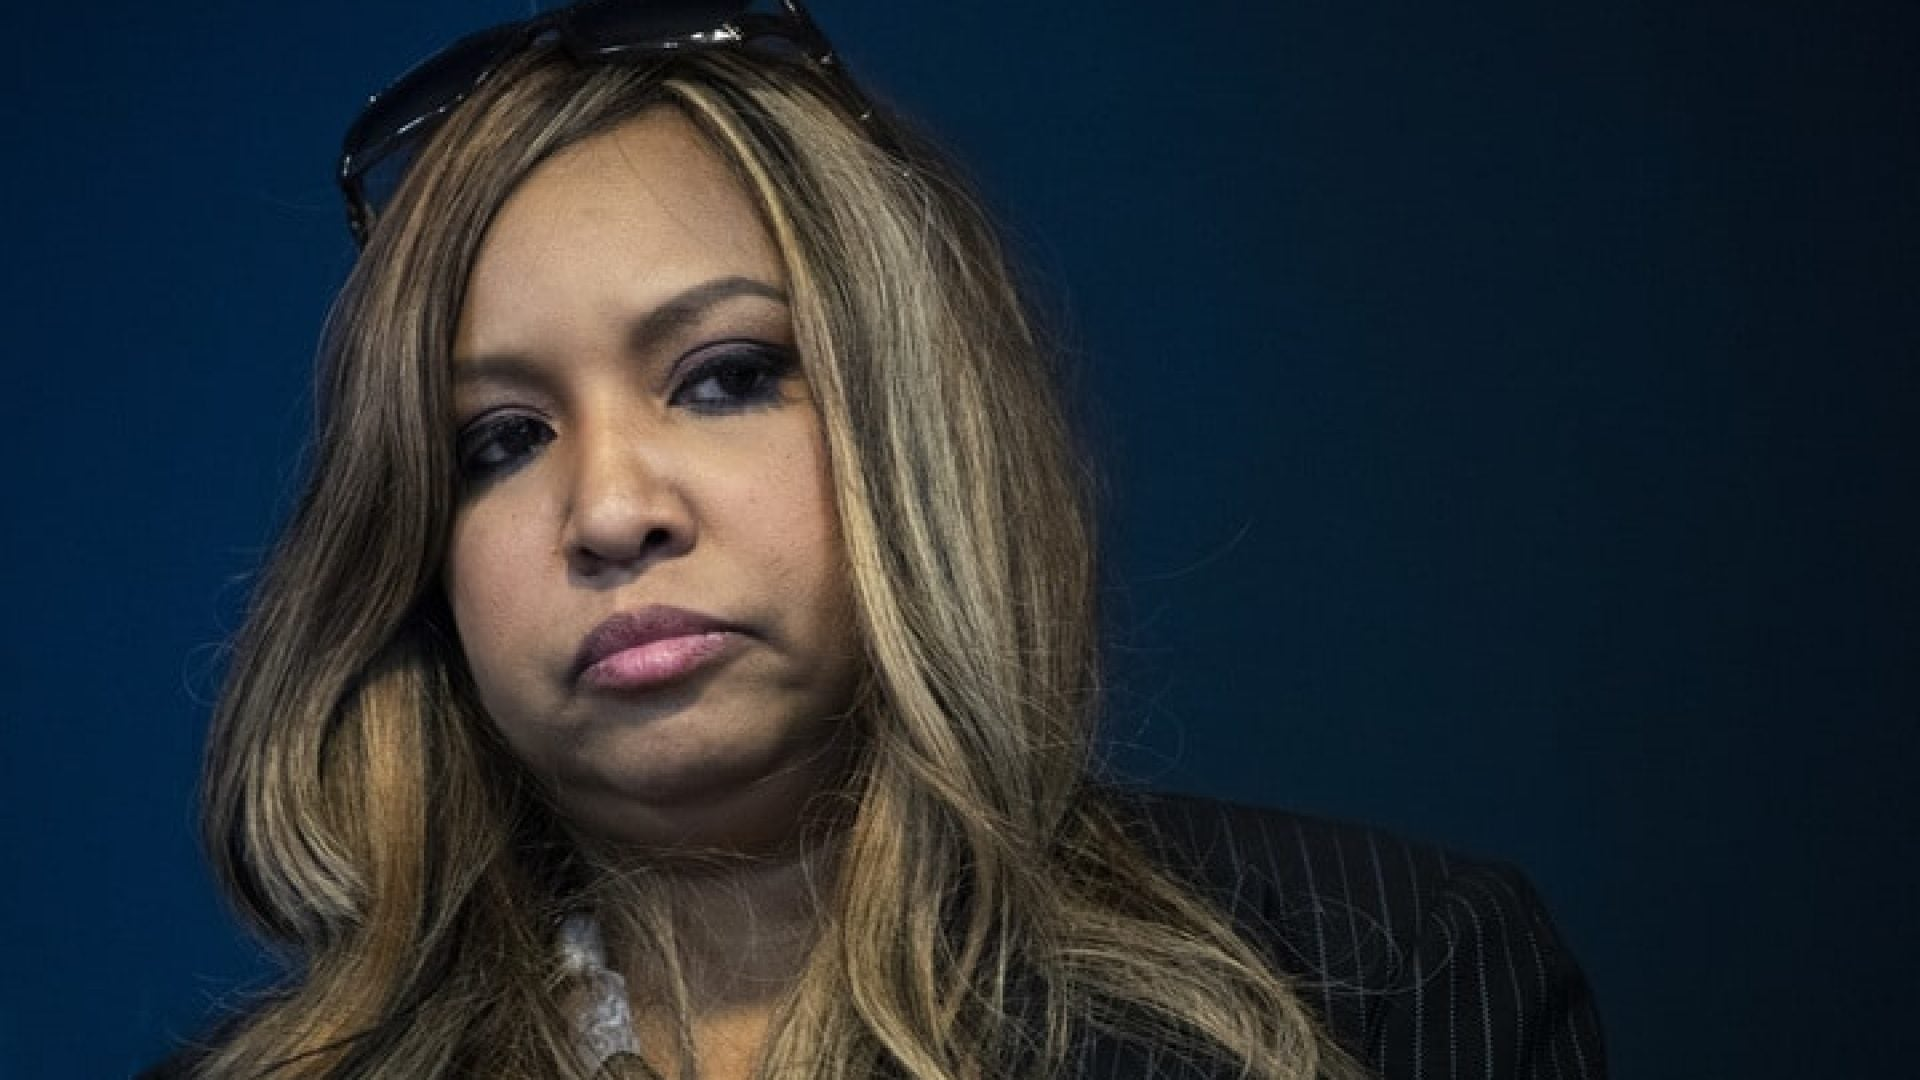 HUD Official Lynne Patton Insists She's 'Not A Prop' After Appearance At Michael Cohen's Congressional Hearing